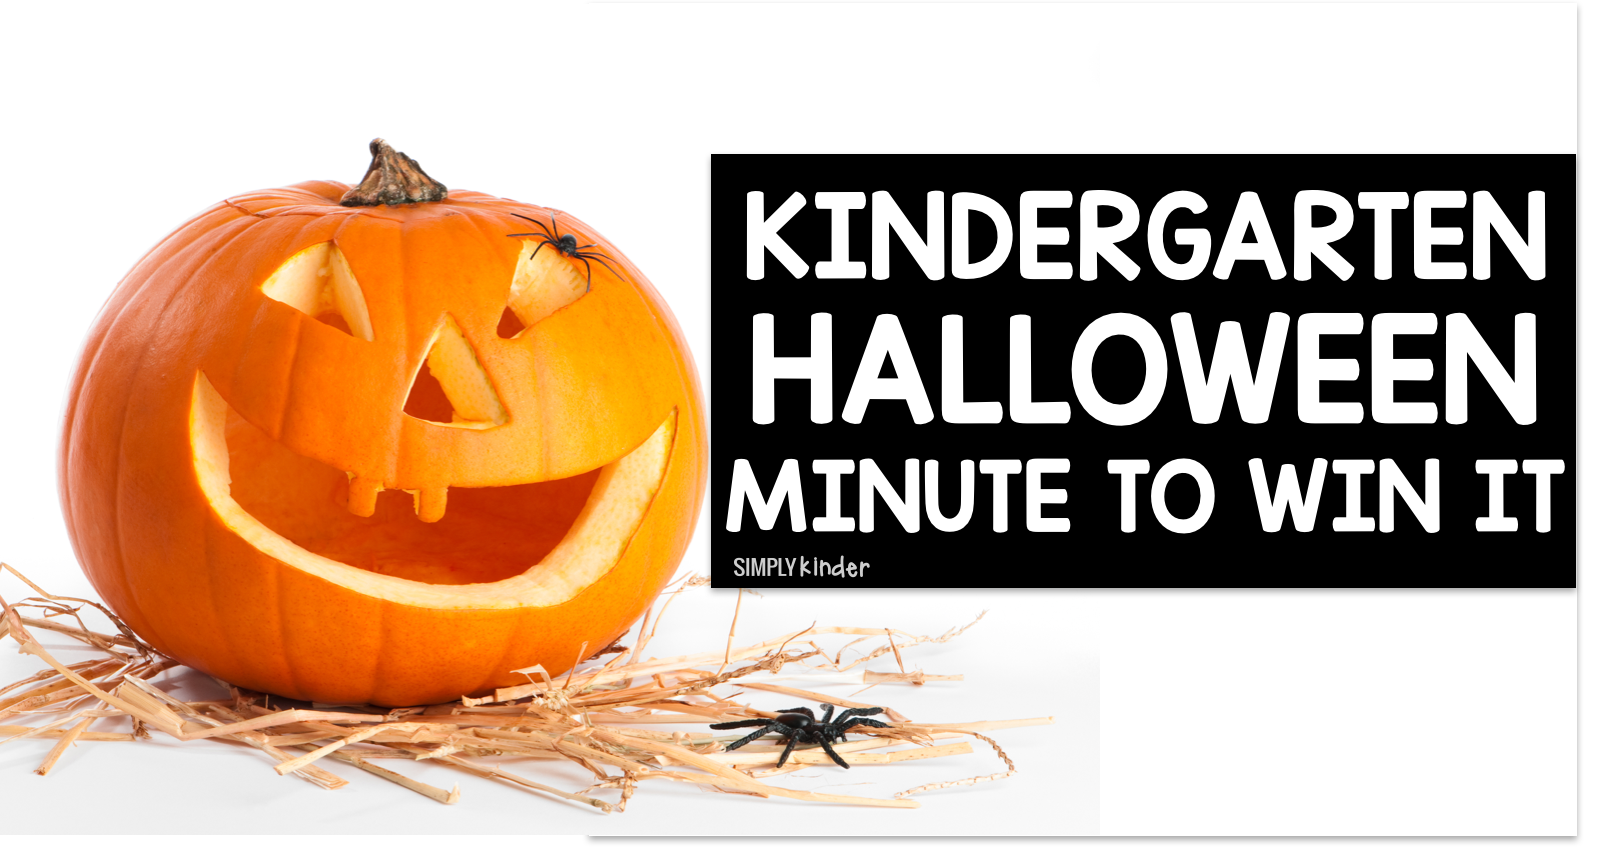 Kindergarten Halloween Minute To Win It